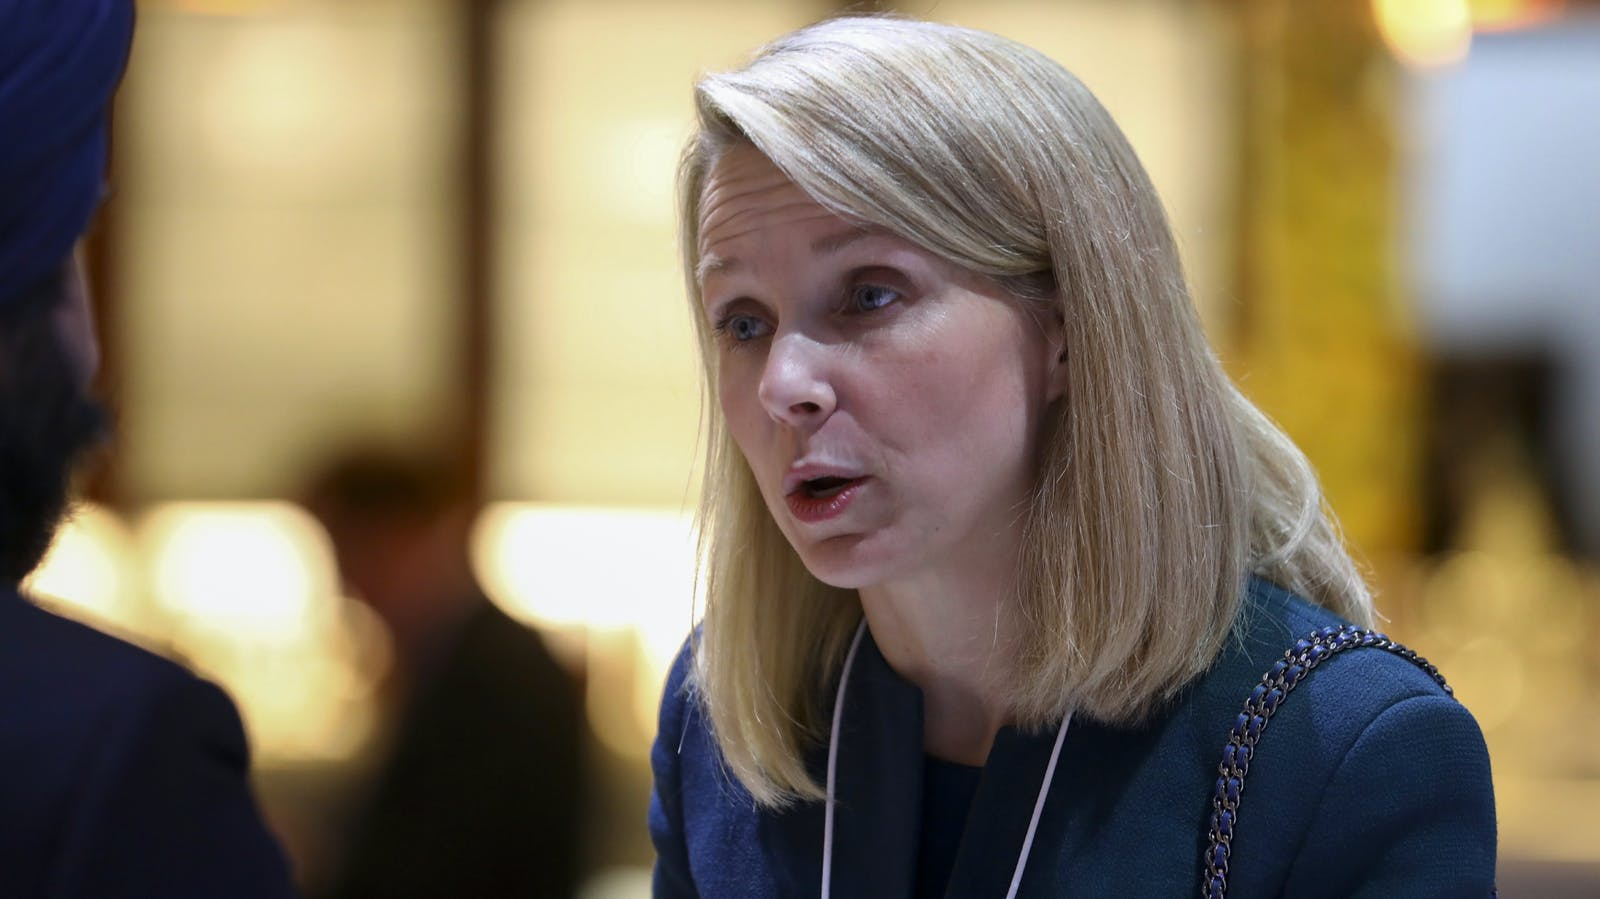 Lumi Labs co-founder Marissa Mayer in January. Photo by Bloomberg